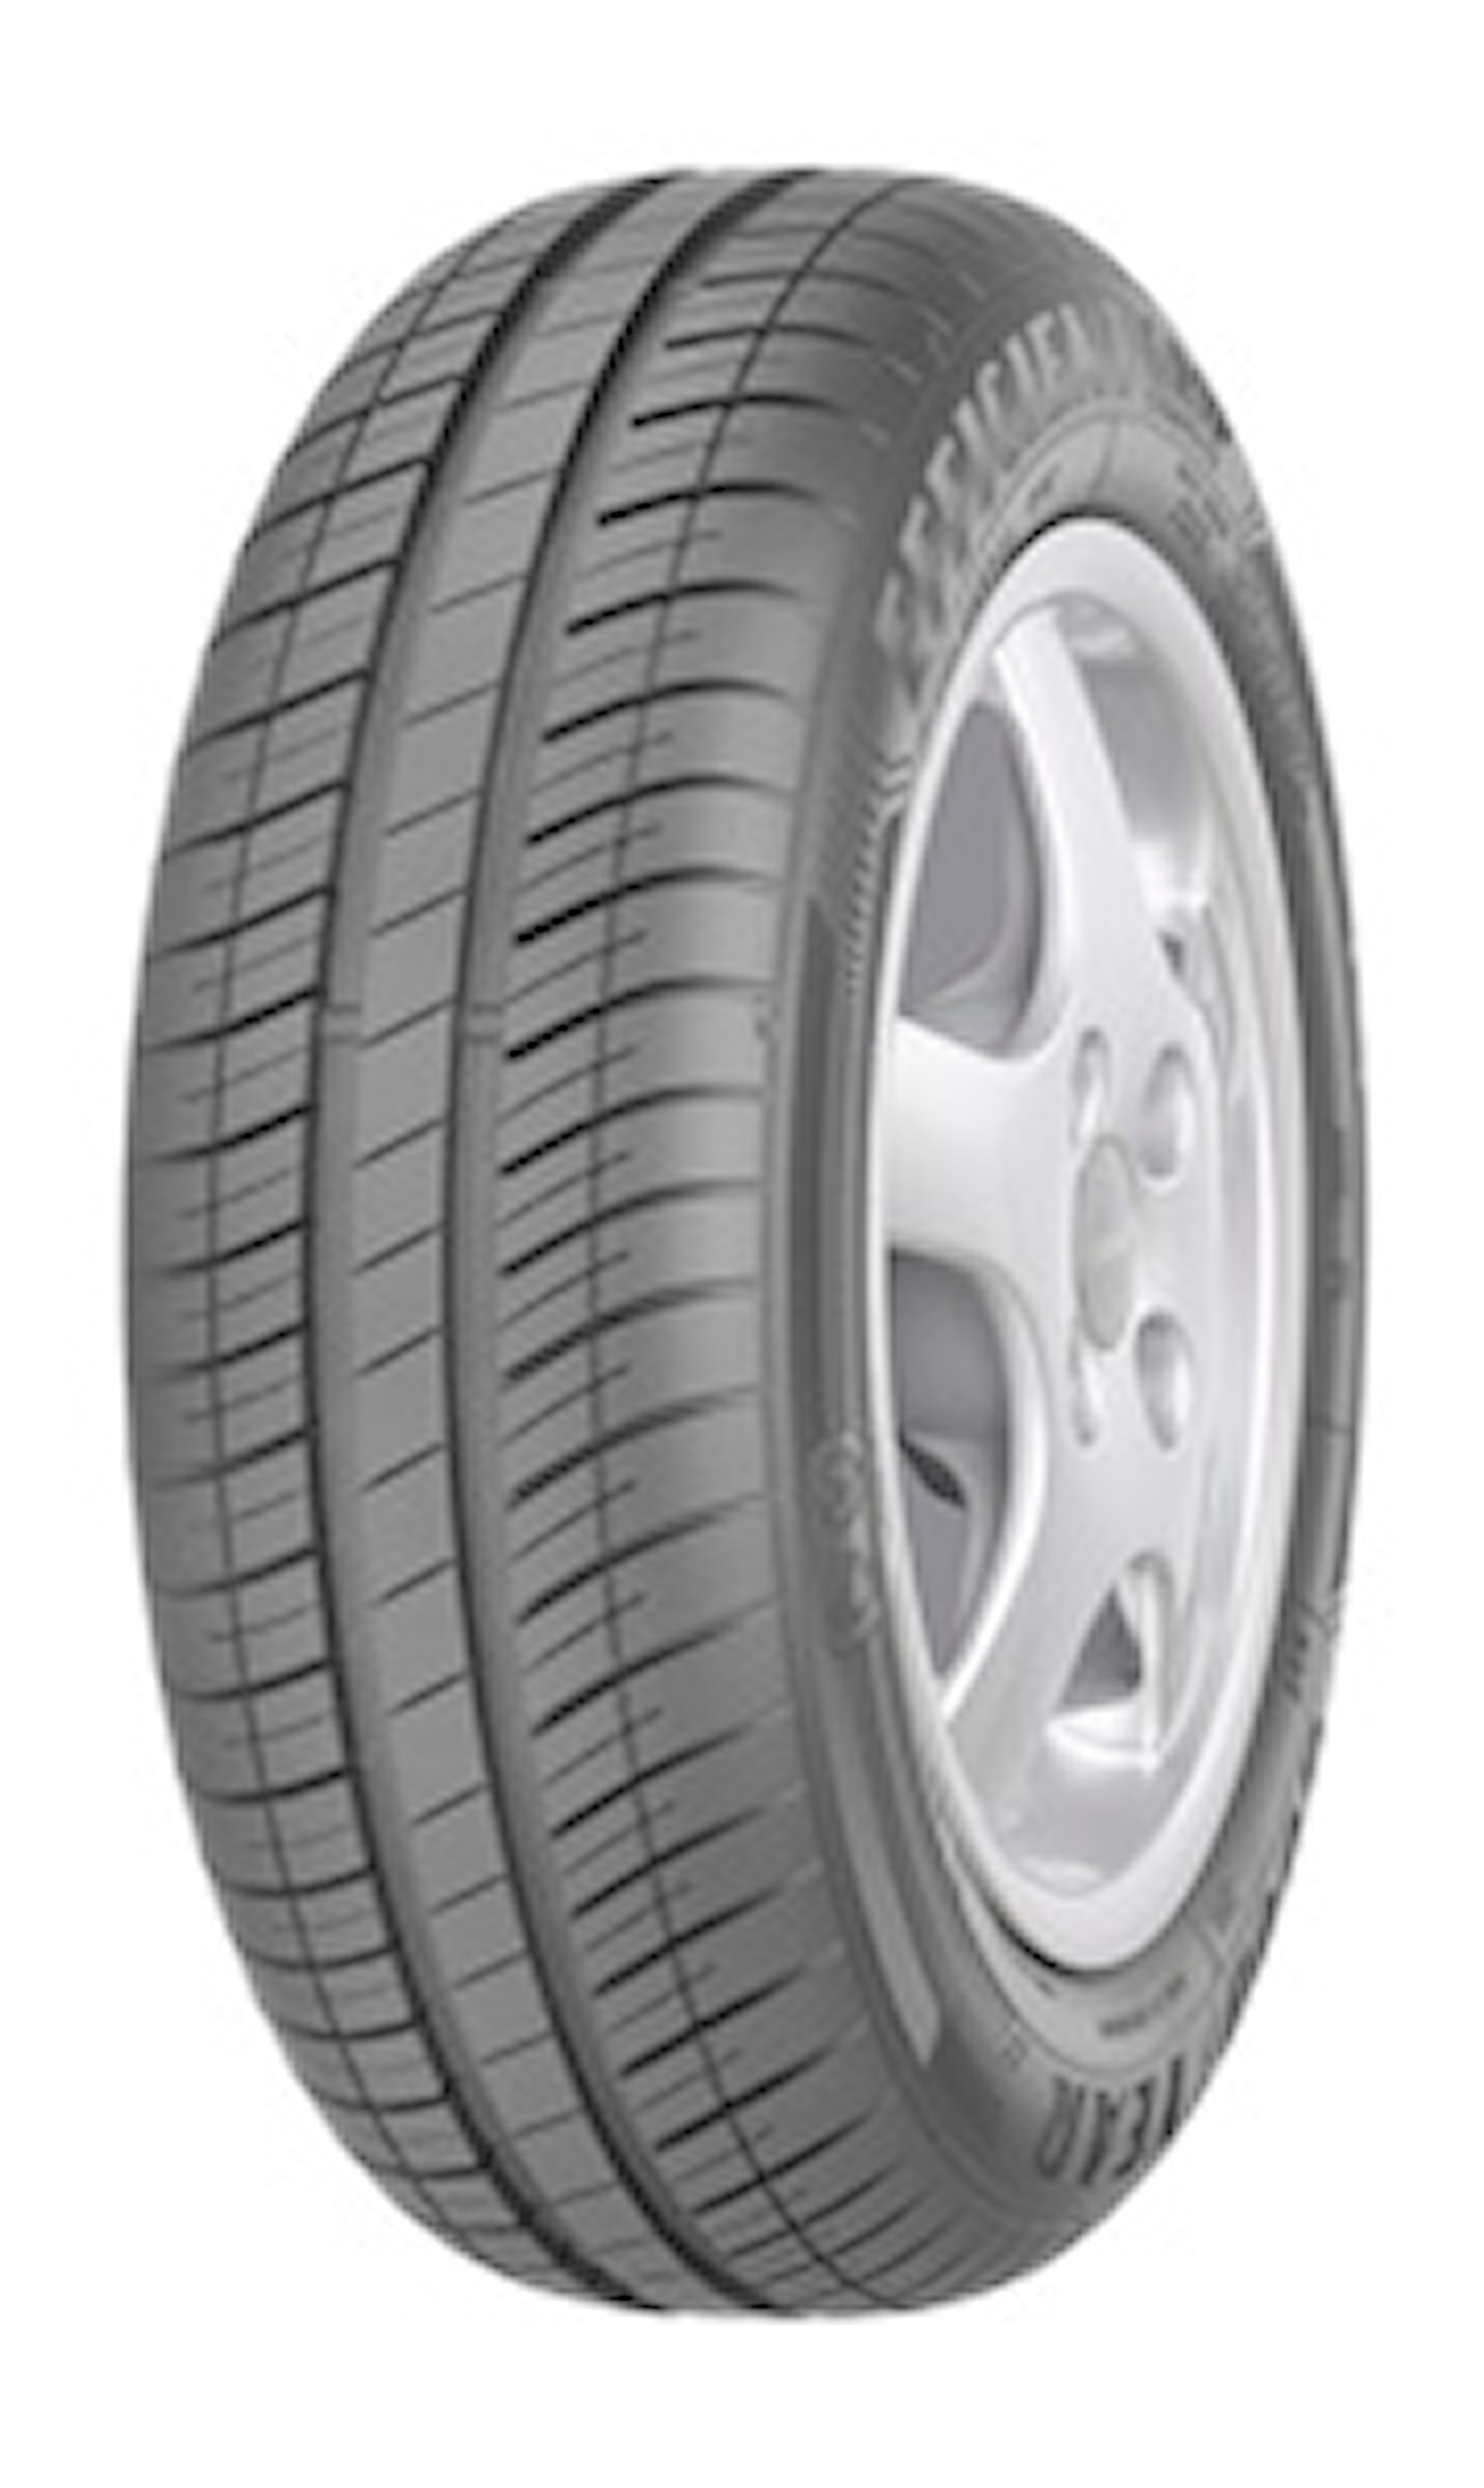 Goodyear EfficientgripComp 91T